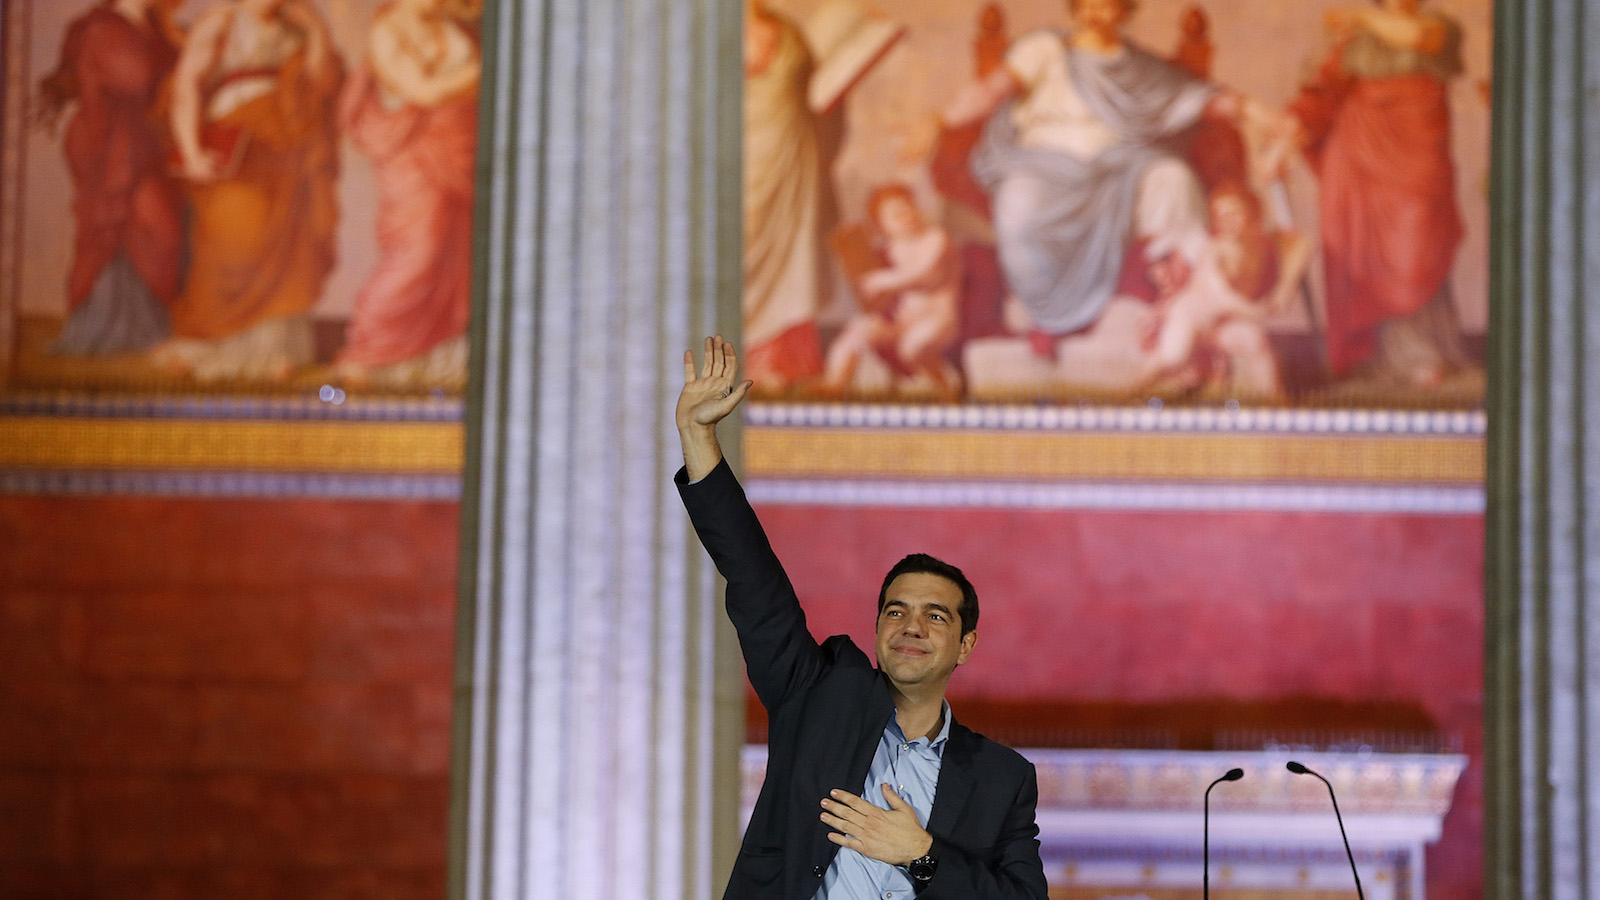 The victory wave from radical leftist Syriza party leader Alexis Tsipras.